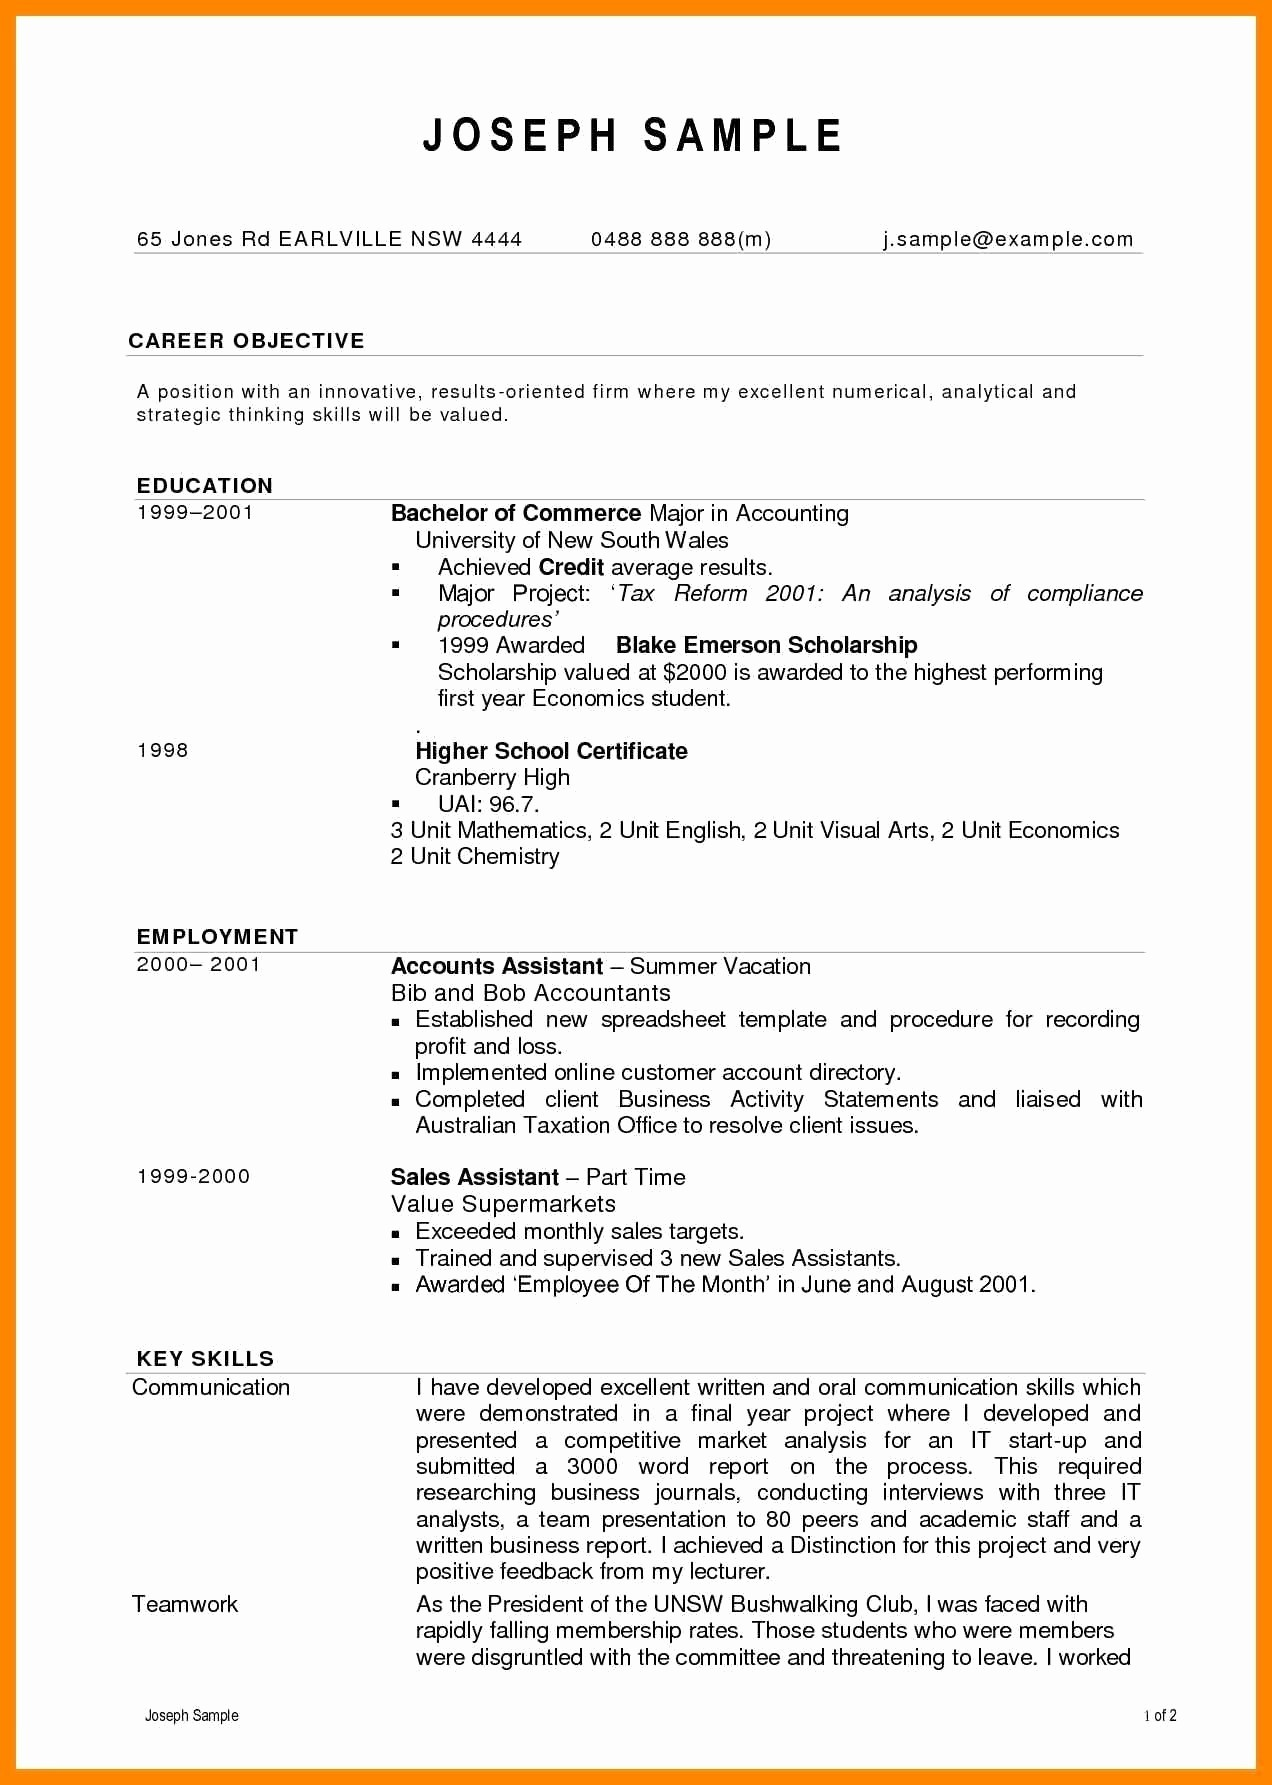 jsa template 2018 sample of certificate of analysis copy impressive job safety analysis template excel